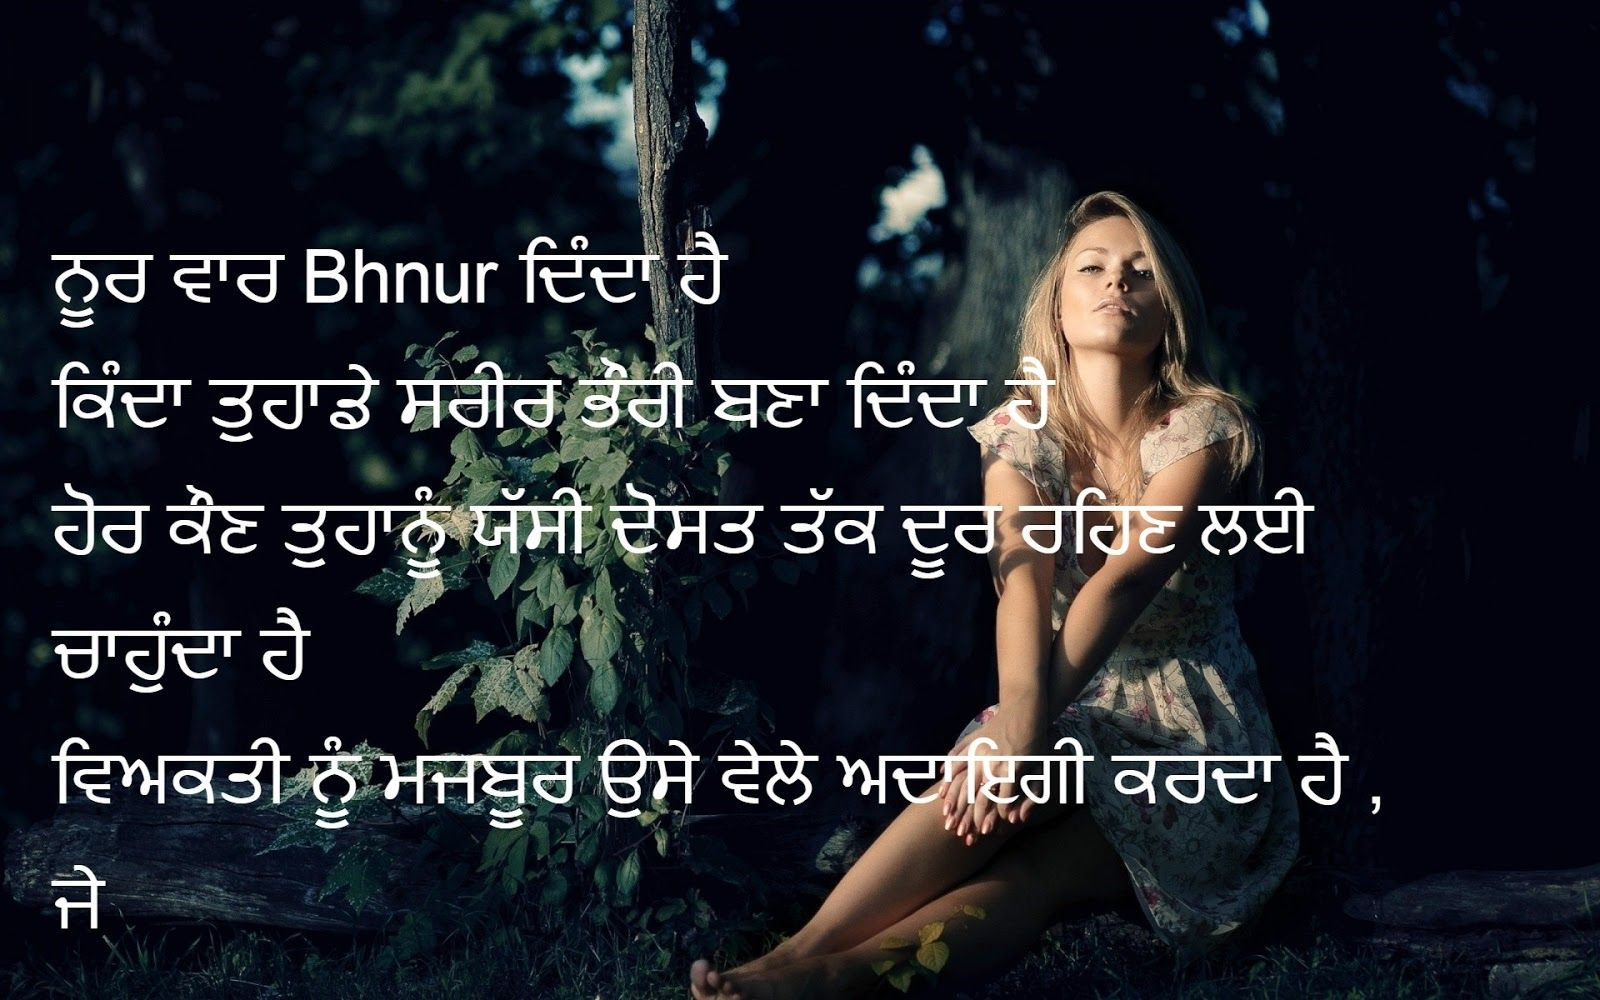 Punjabi Love Shayari Wallpaper Hd Wallpaper sportstle